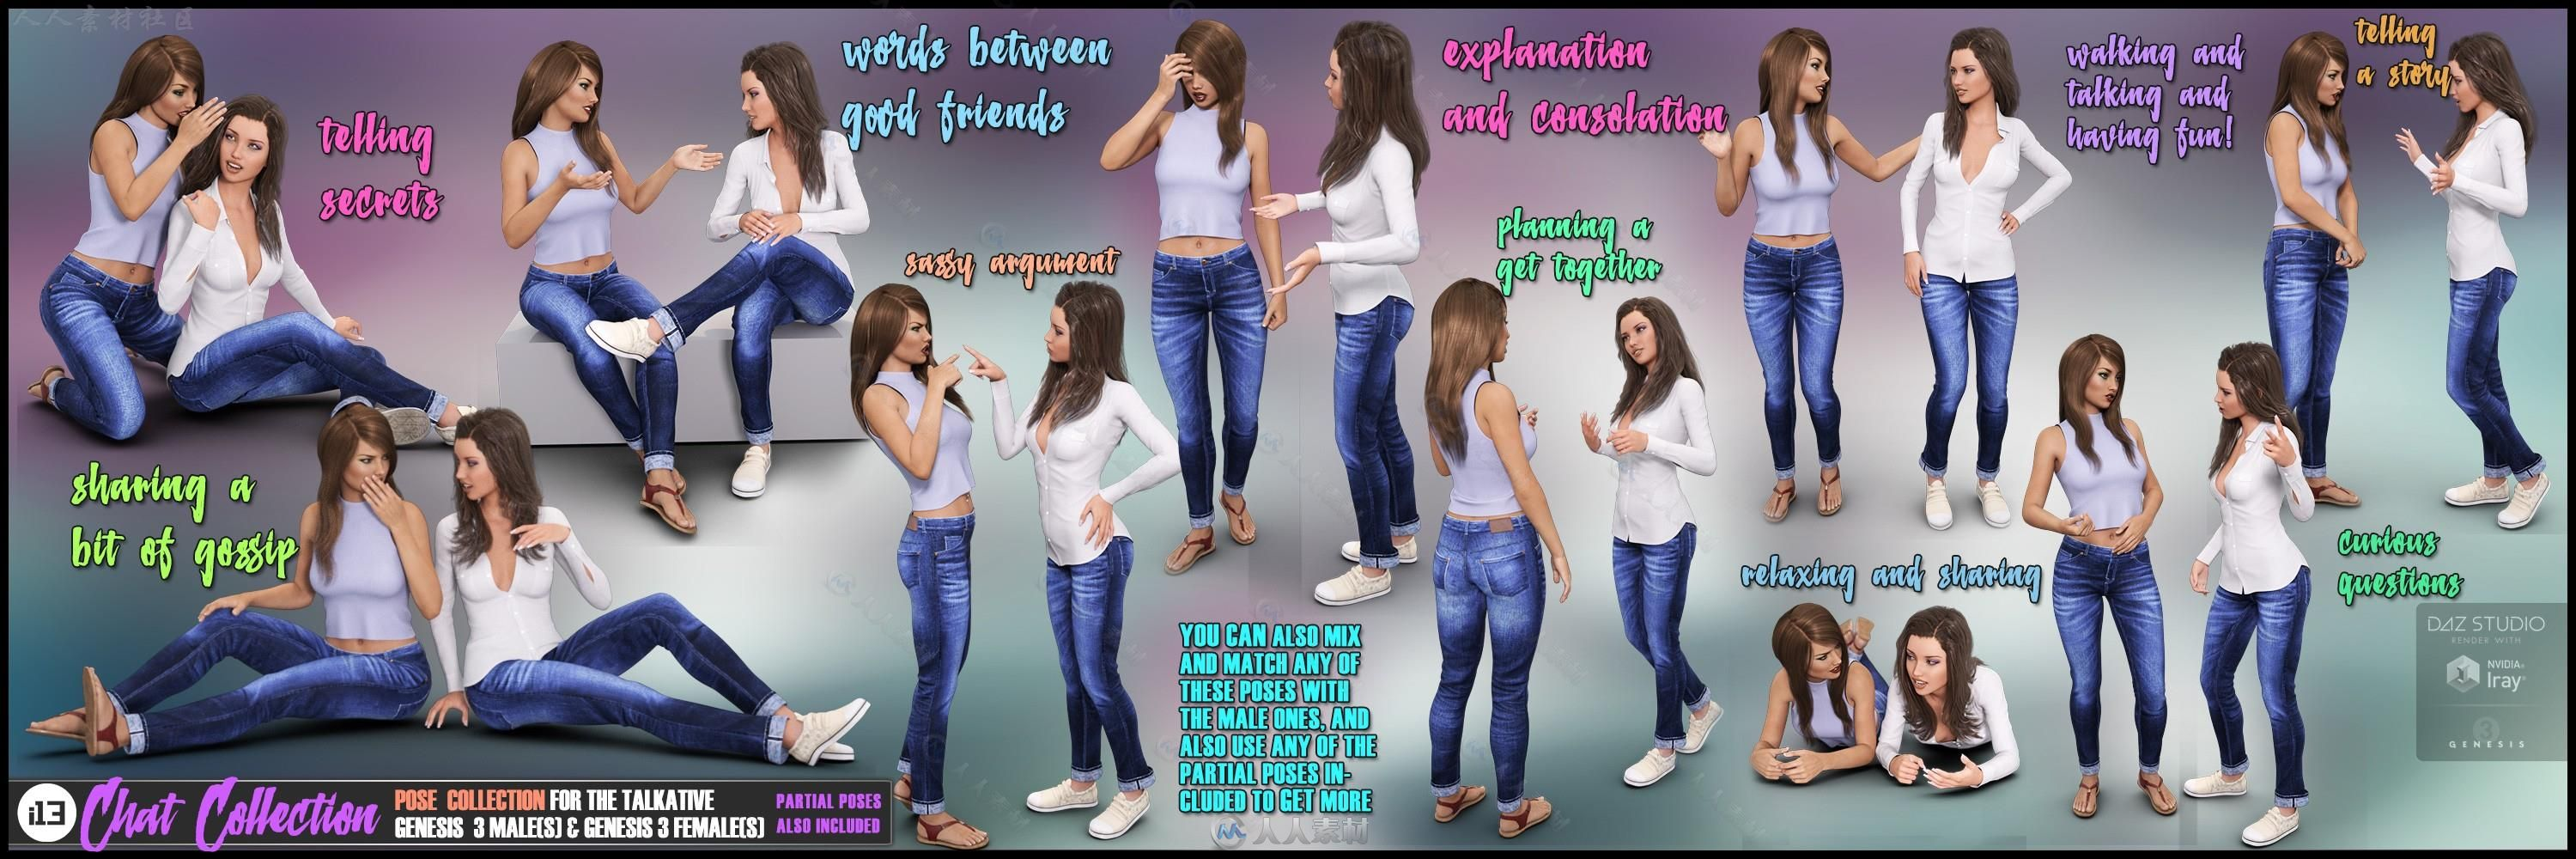 DAZ3D各种聊天男女性姿势3D模型合辑 DAZ3D i13 Chat Collection Poses for the Gen...21 / 作者:抱着猫的老鼠 / 帖子ID:16710934,3443589